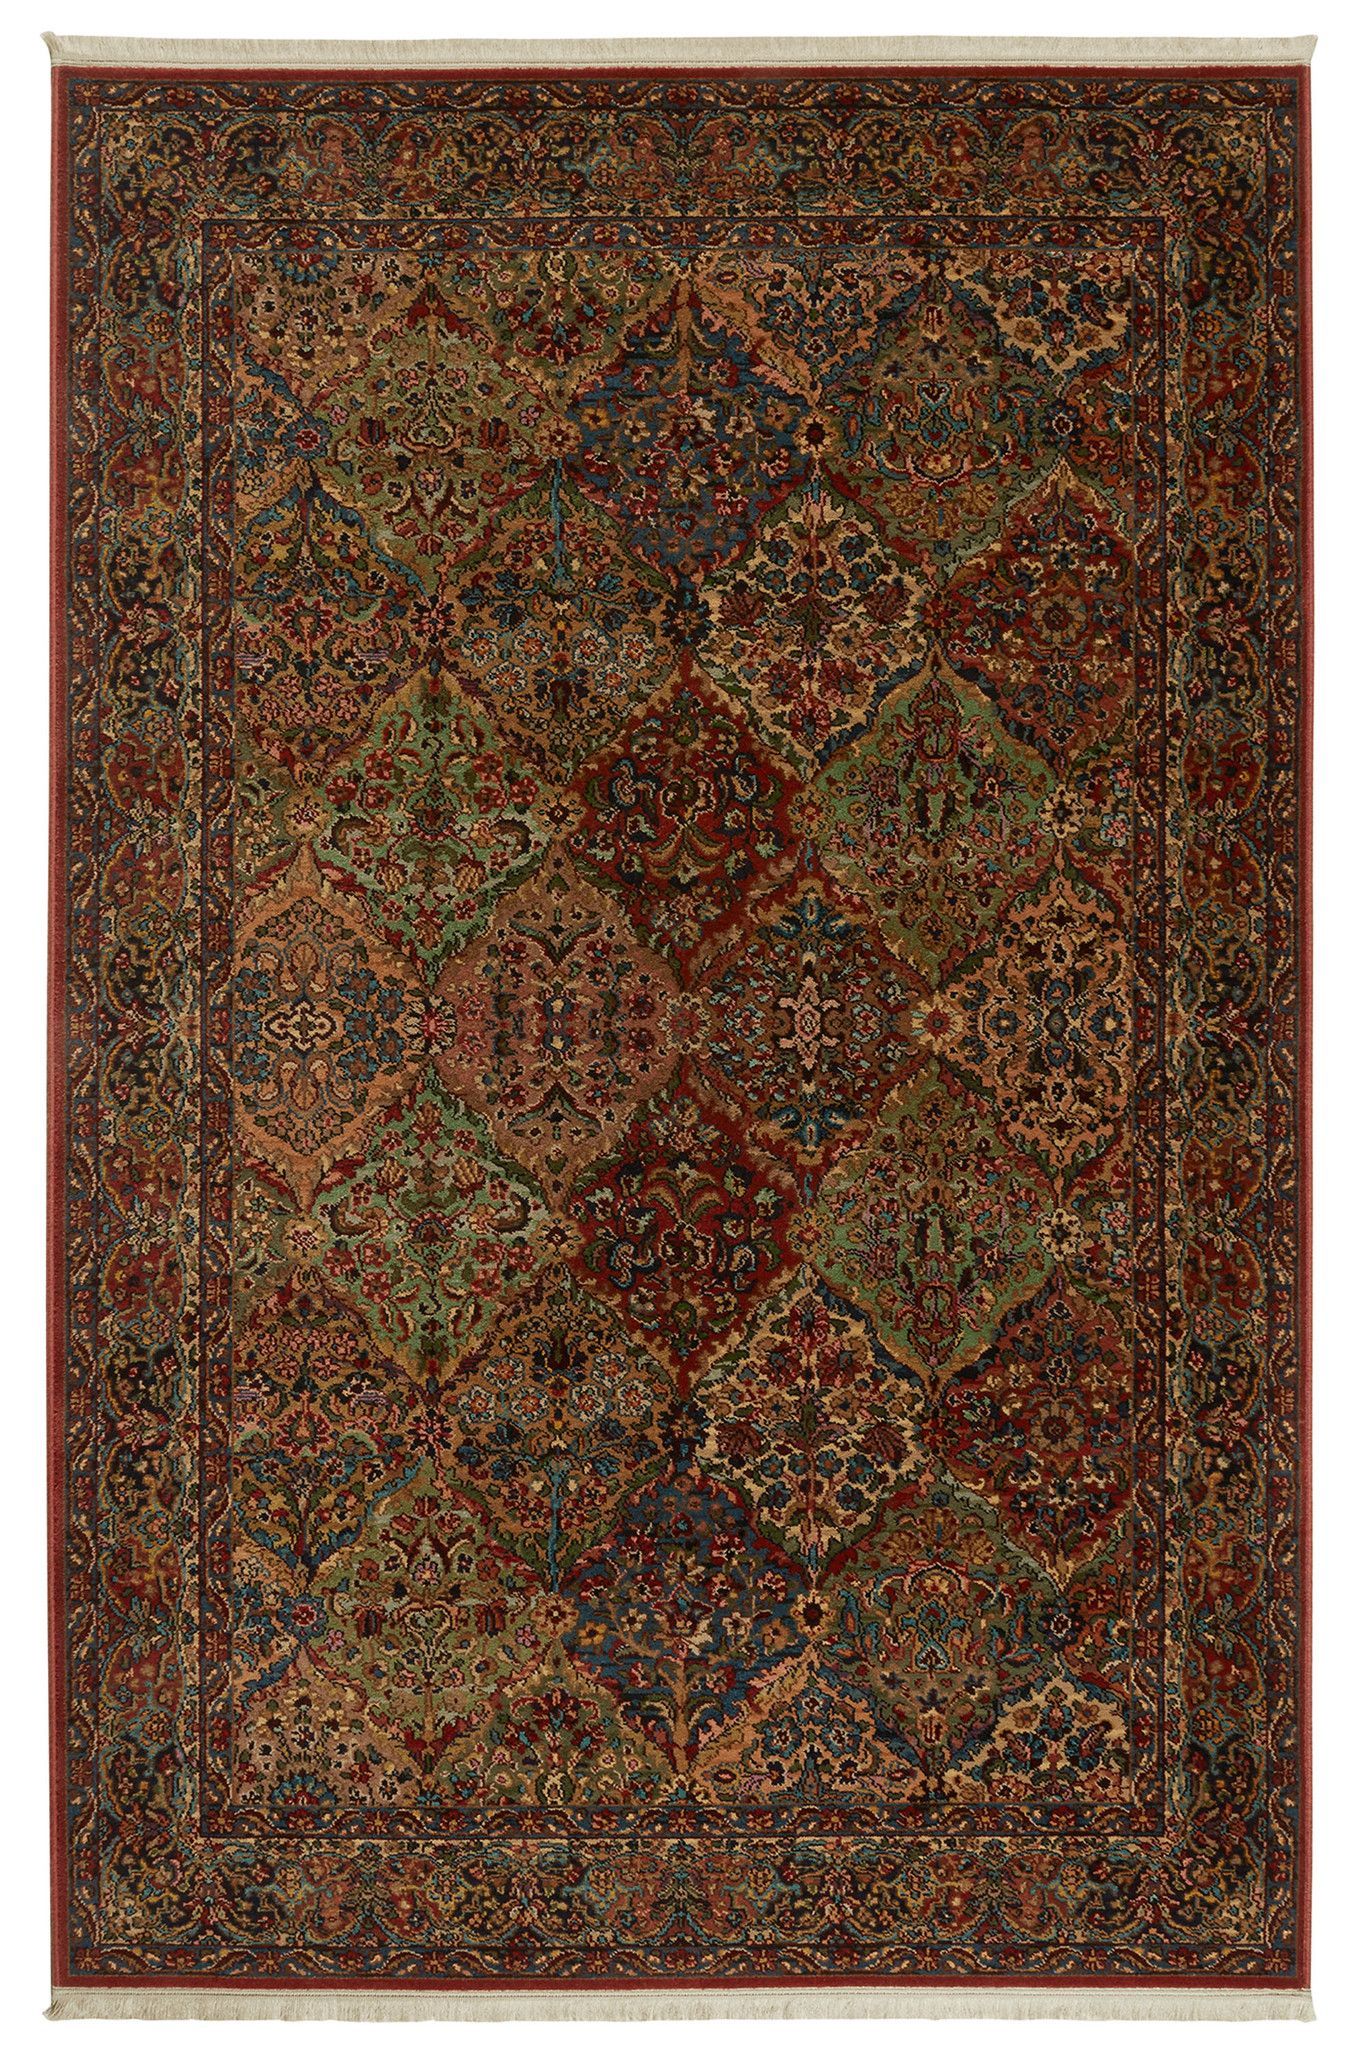 Original Karastan Multi Panel Kirman 00717 Multi Rug Karastan Rugs On Carpet Simple Carpets